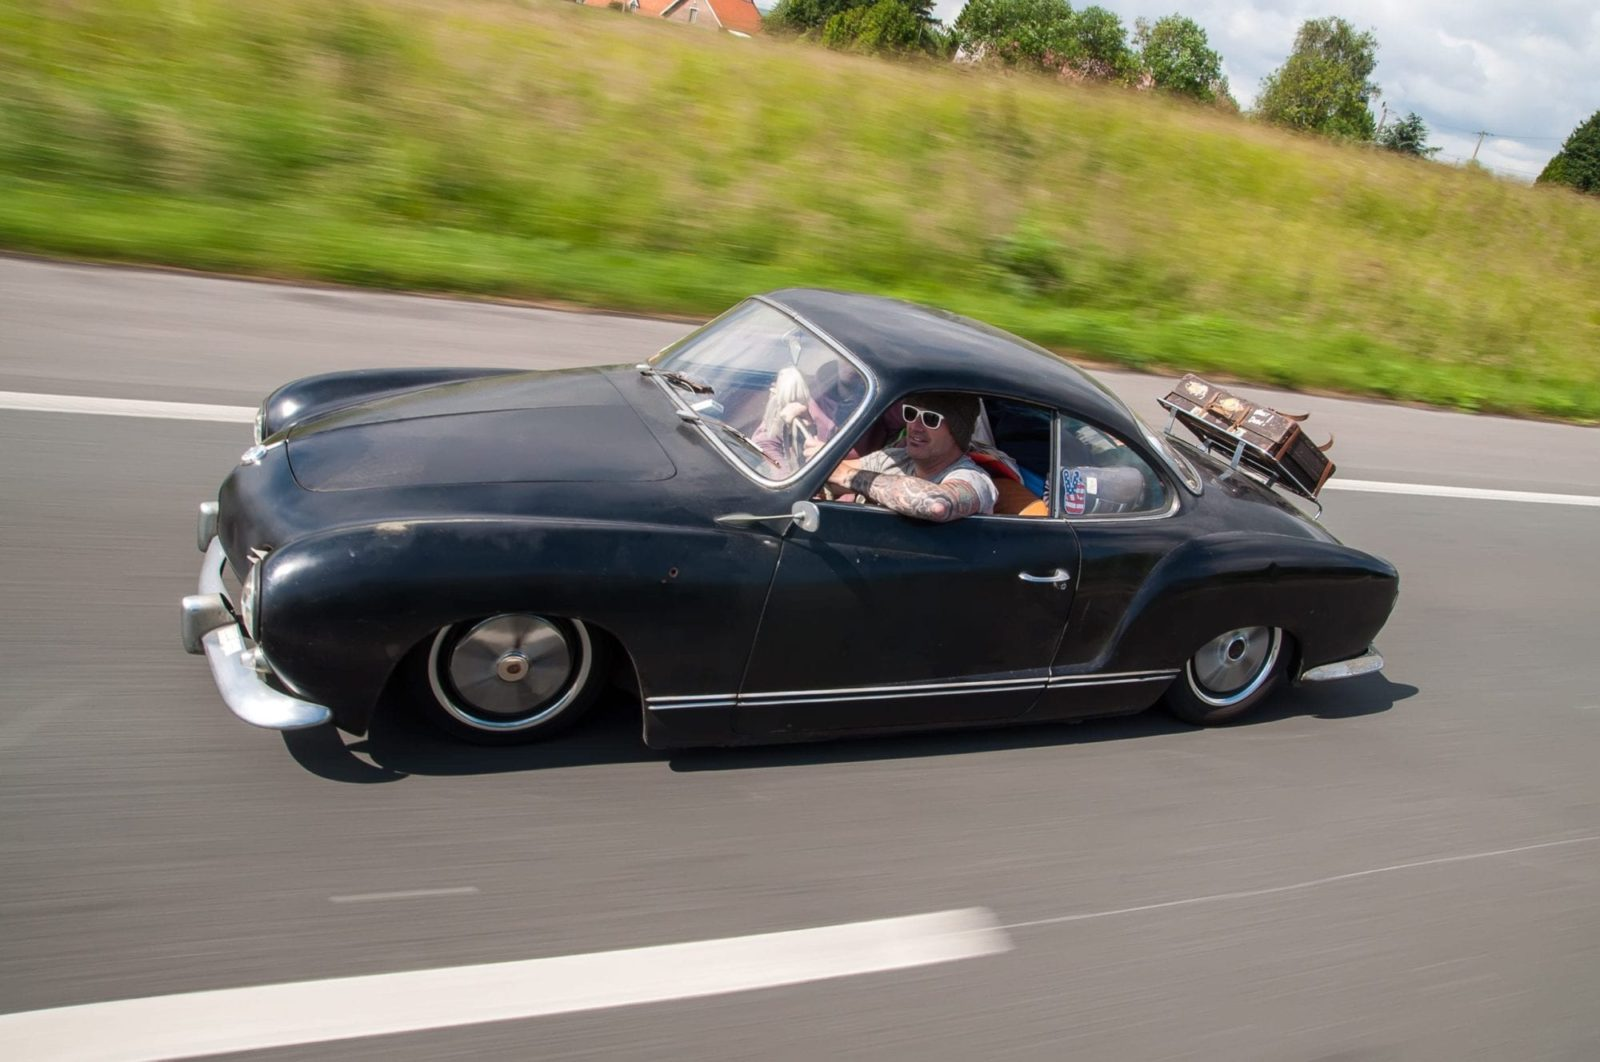 James Murtough's – 57 Low Light Ghia – Black Nailed UK